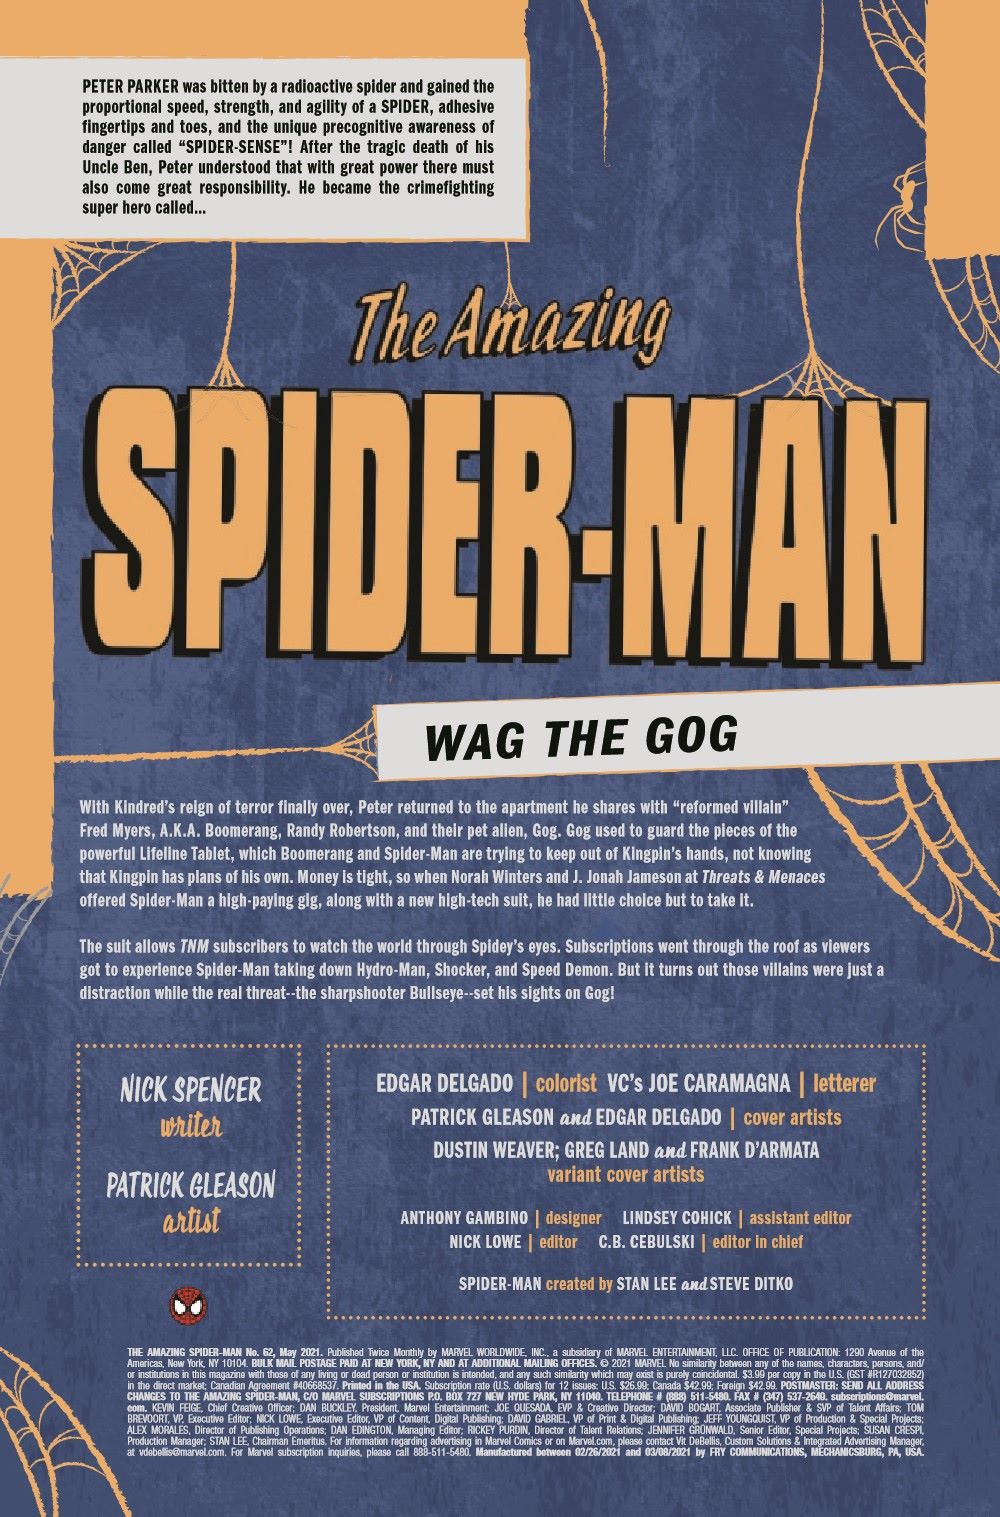 ASM2018062_Preview-2 ComicList Previews: THE AMAZING SPIDER-MAN #62